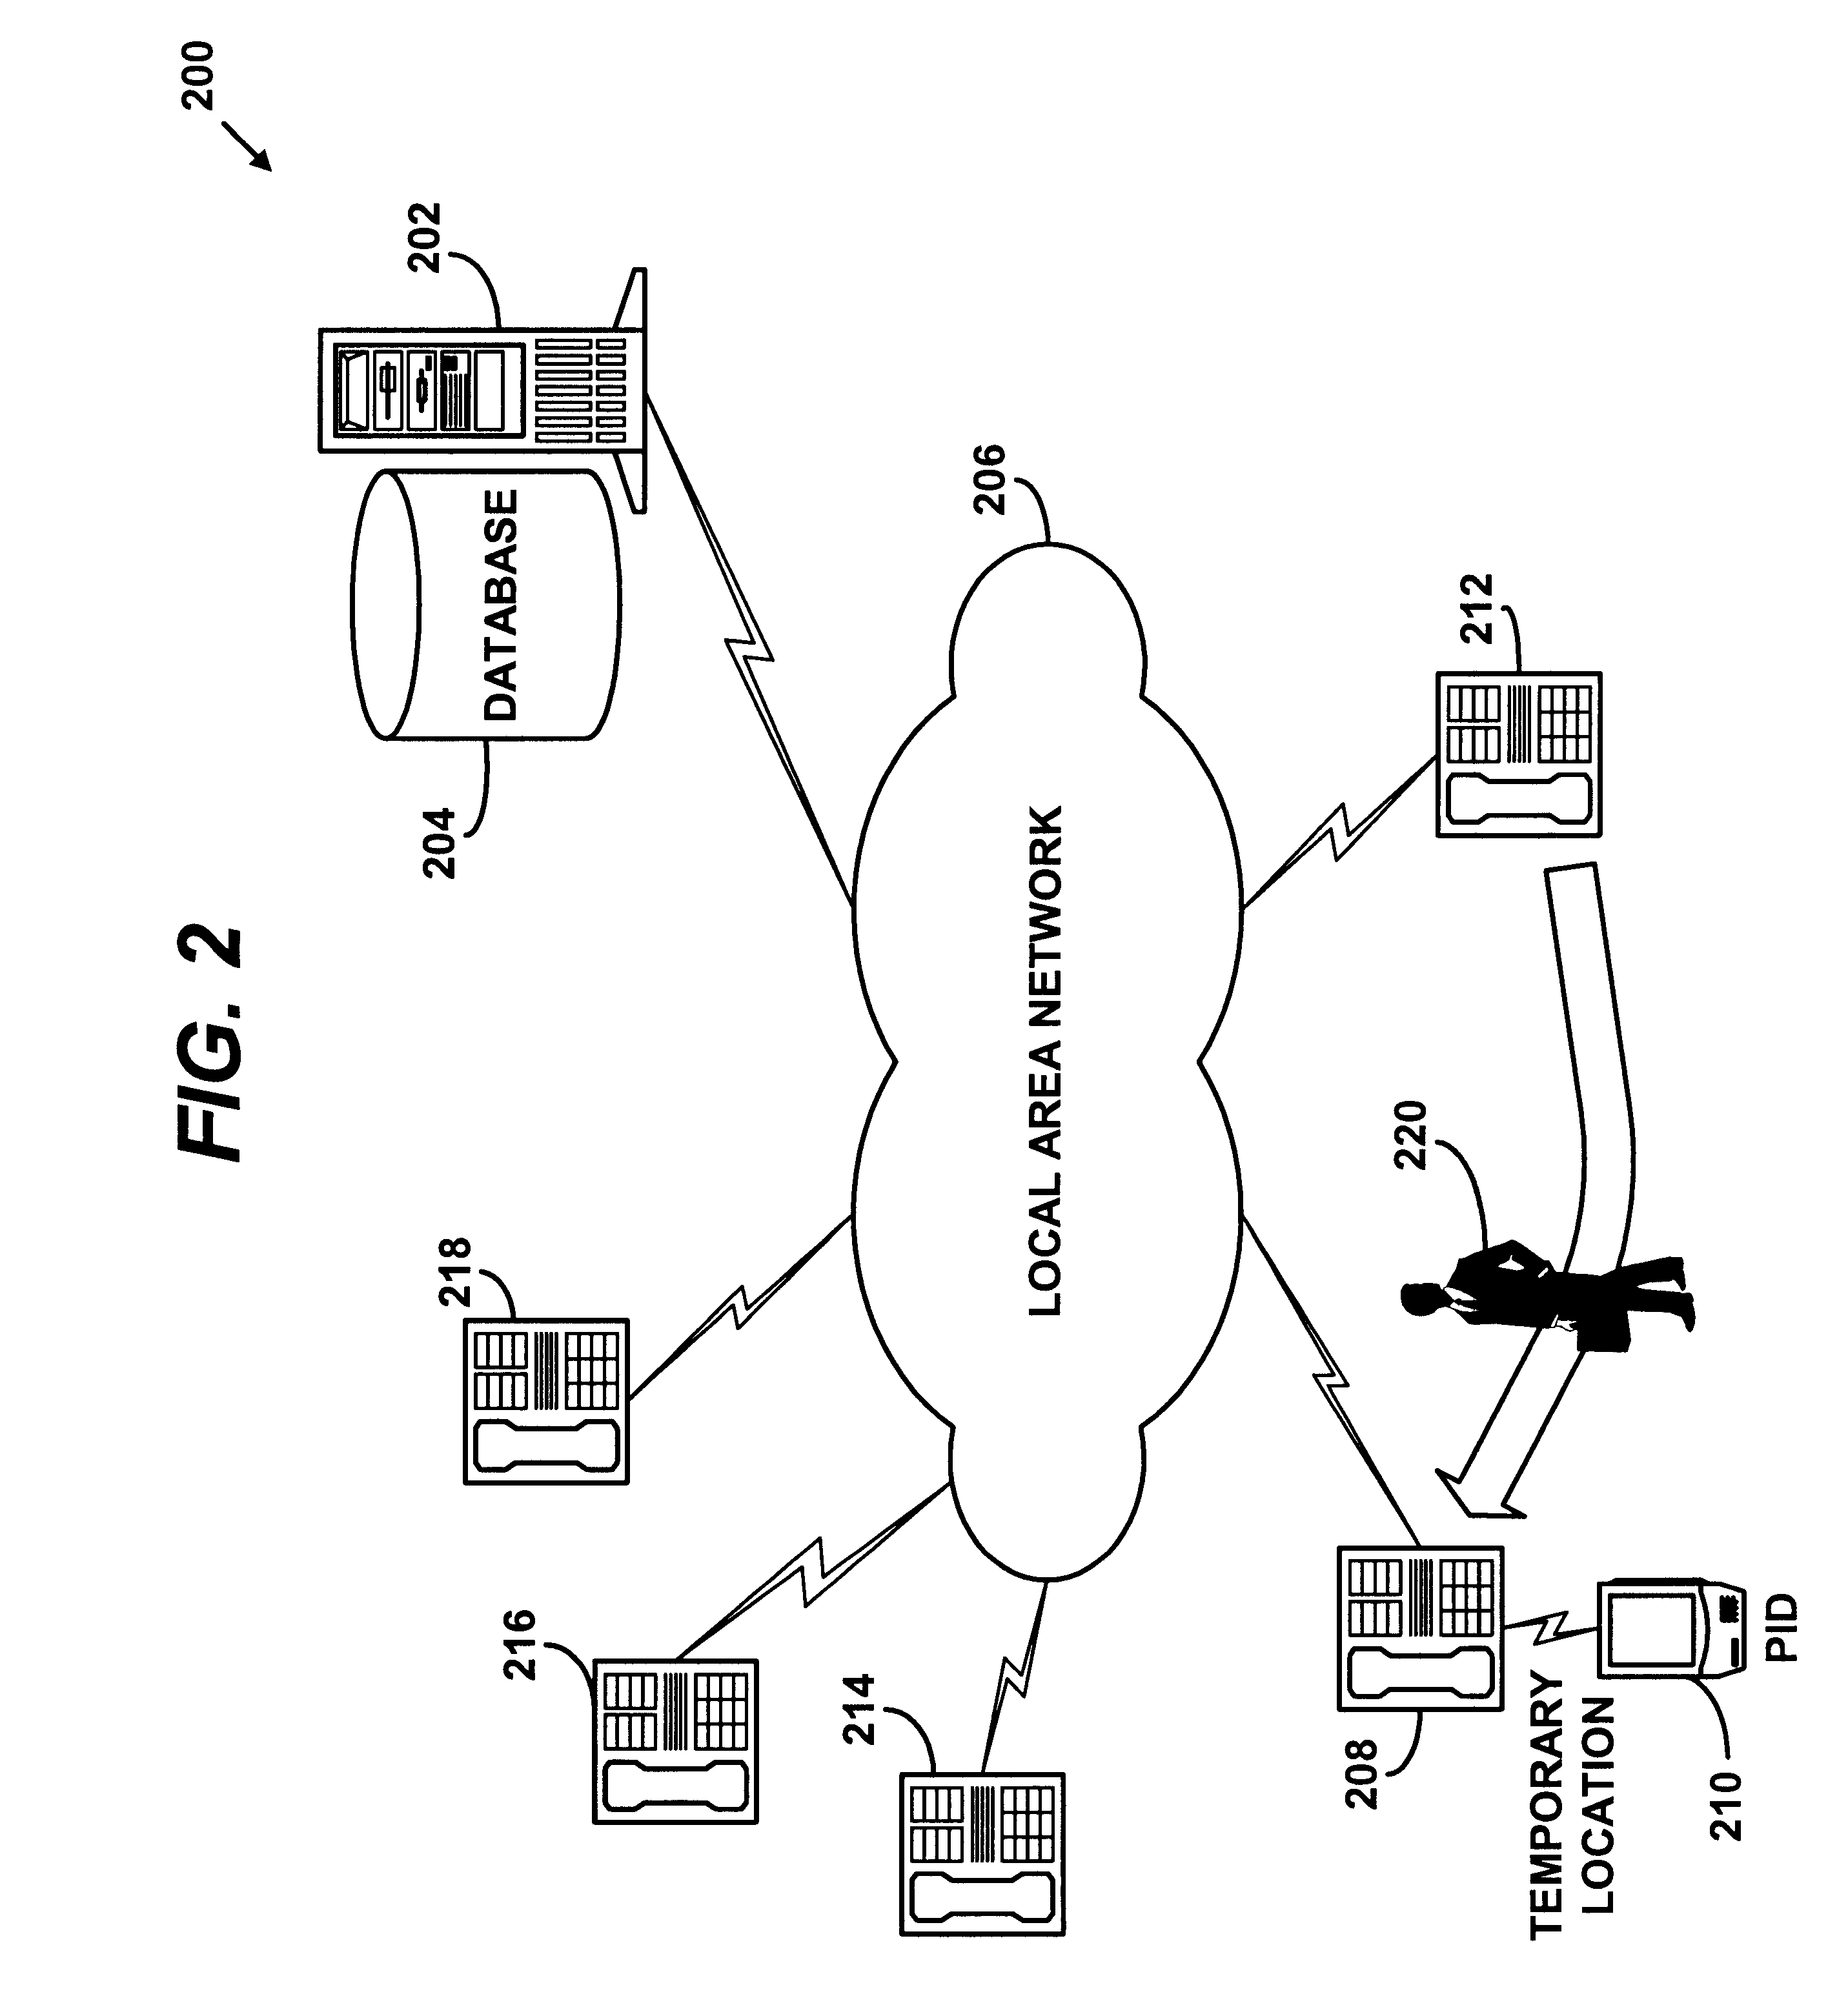 Patent Us 6446127 B1 Led Tv Schematic Lcd Interconnect Images